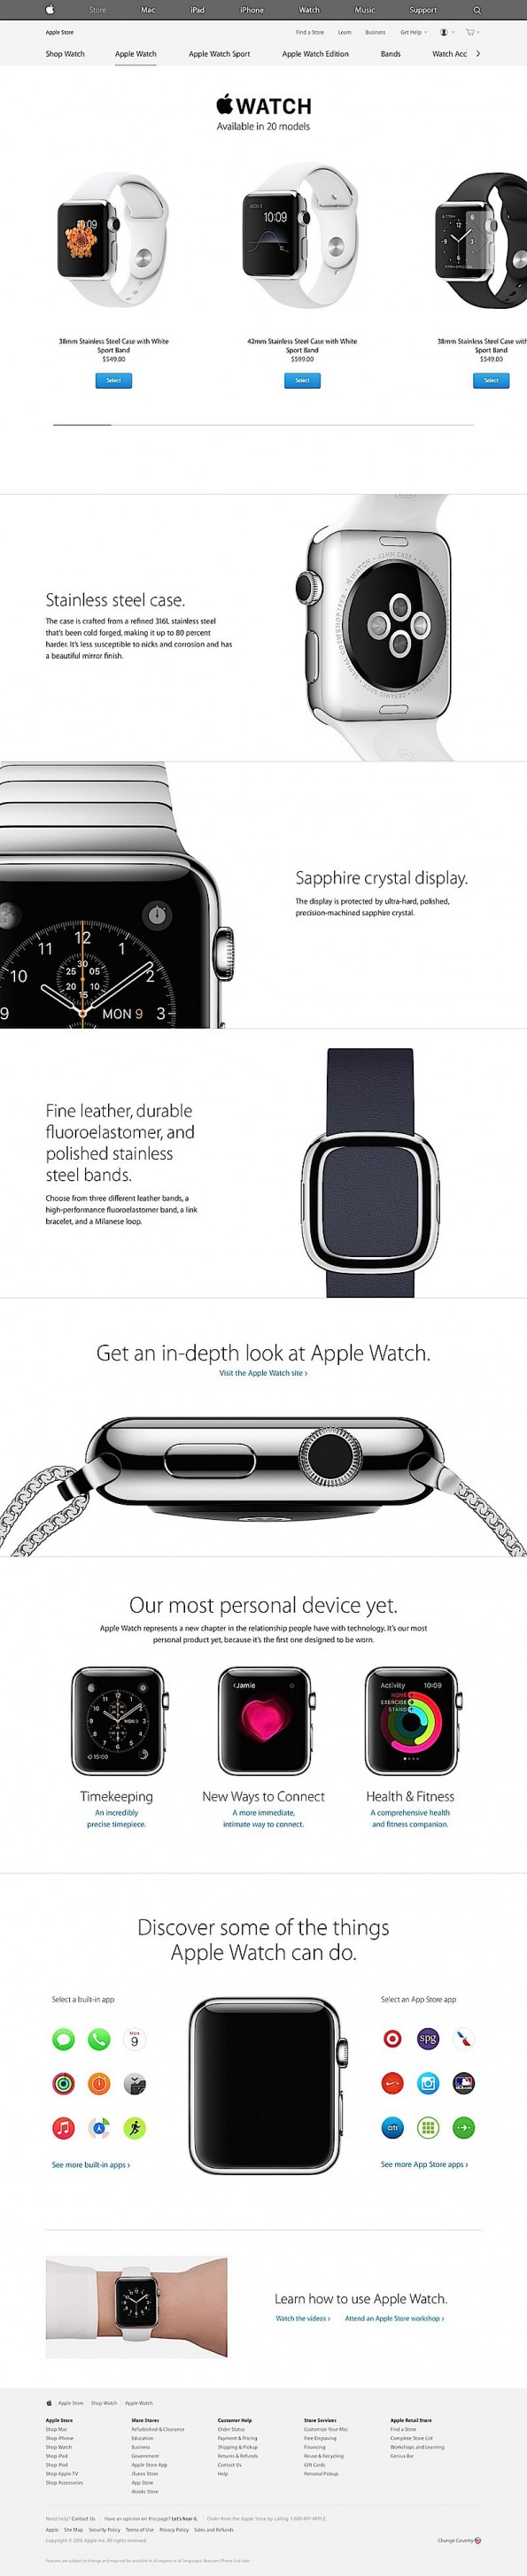 (Screenshots: apple.com)